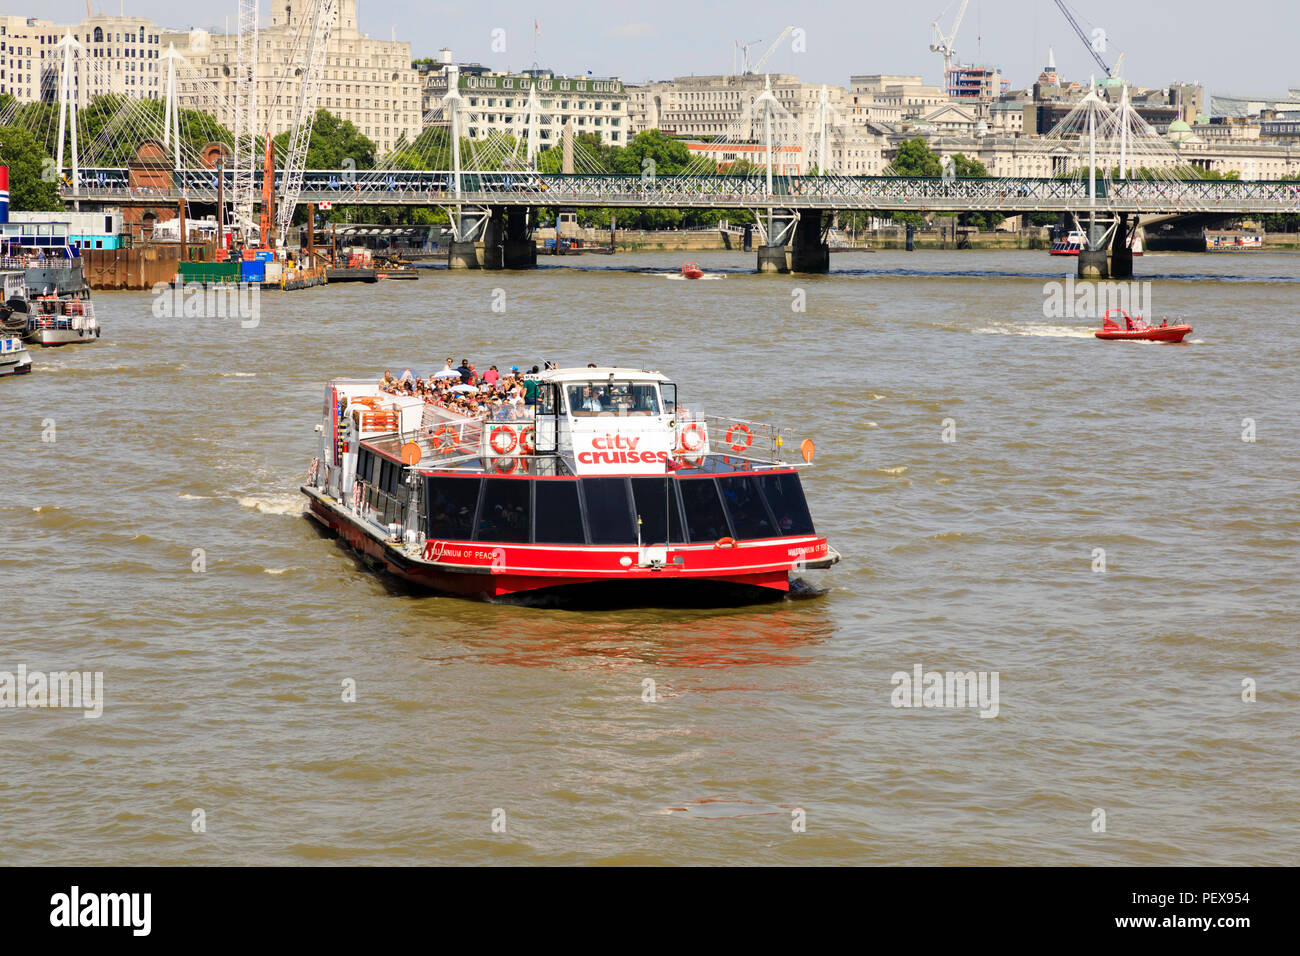 Sightseeing cruise ship, City Cruises on the River Thames with Jubilee and Hungerford bridge in the background.London, England Stock Photo